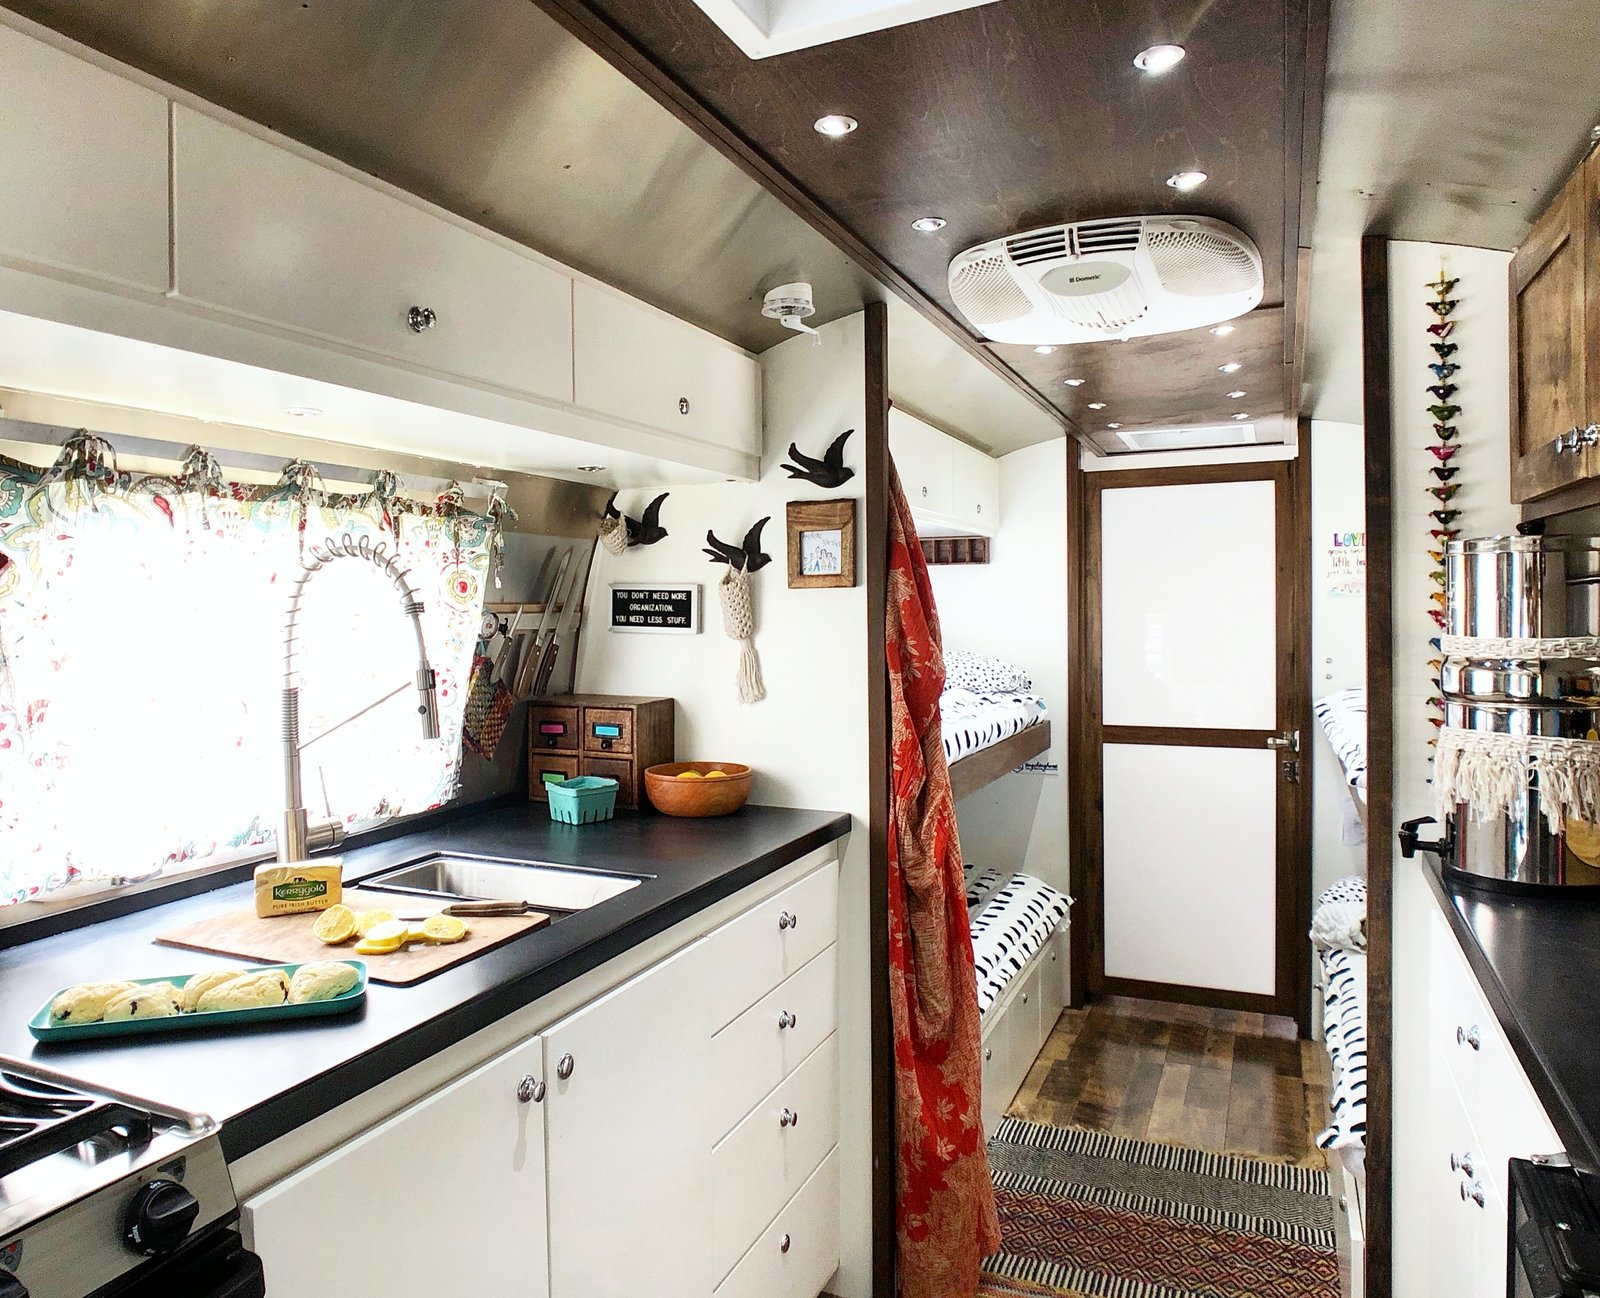 Kitchen, White Cabinet, Undermount Sink, Range, and Medium Hardwood Floor In the kitchen, there is plenty of counter space and storage.    Photo 5 of 12 in A 1970s Airstream Is Revamped Into an Off-Grid Home For Six from 1972 Vintage Airstream Trailer